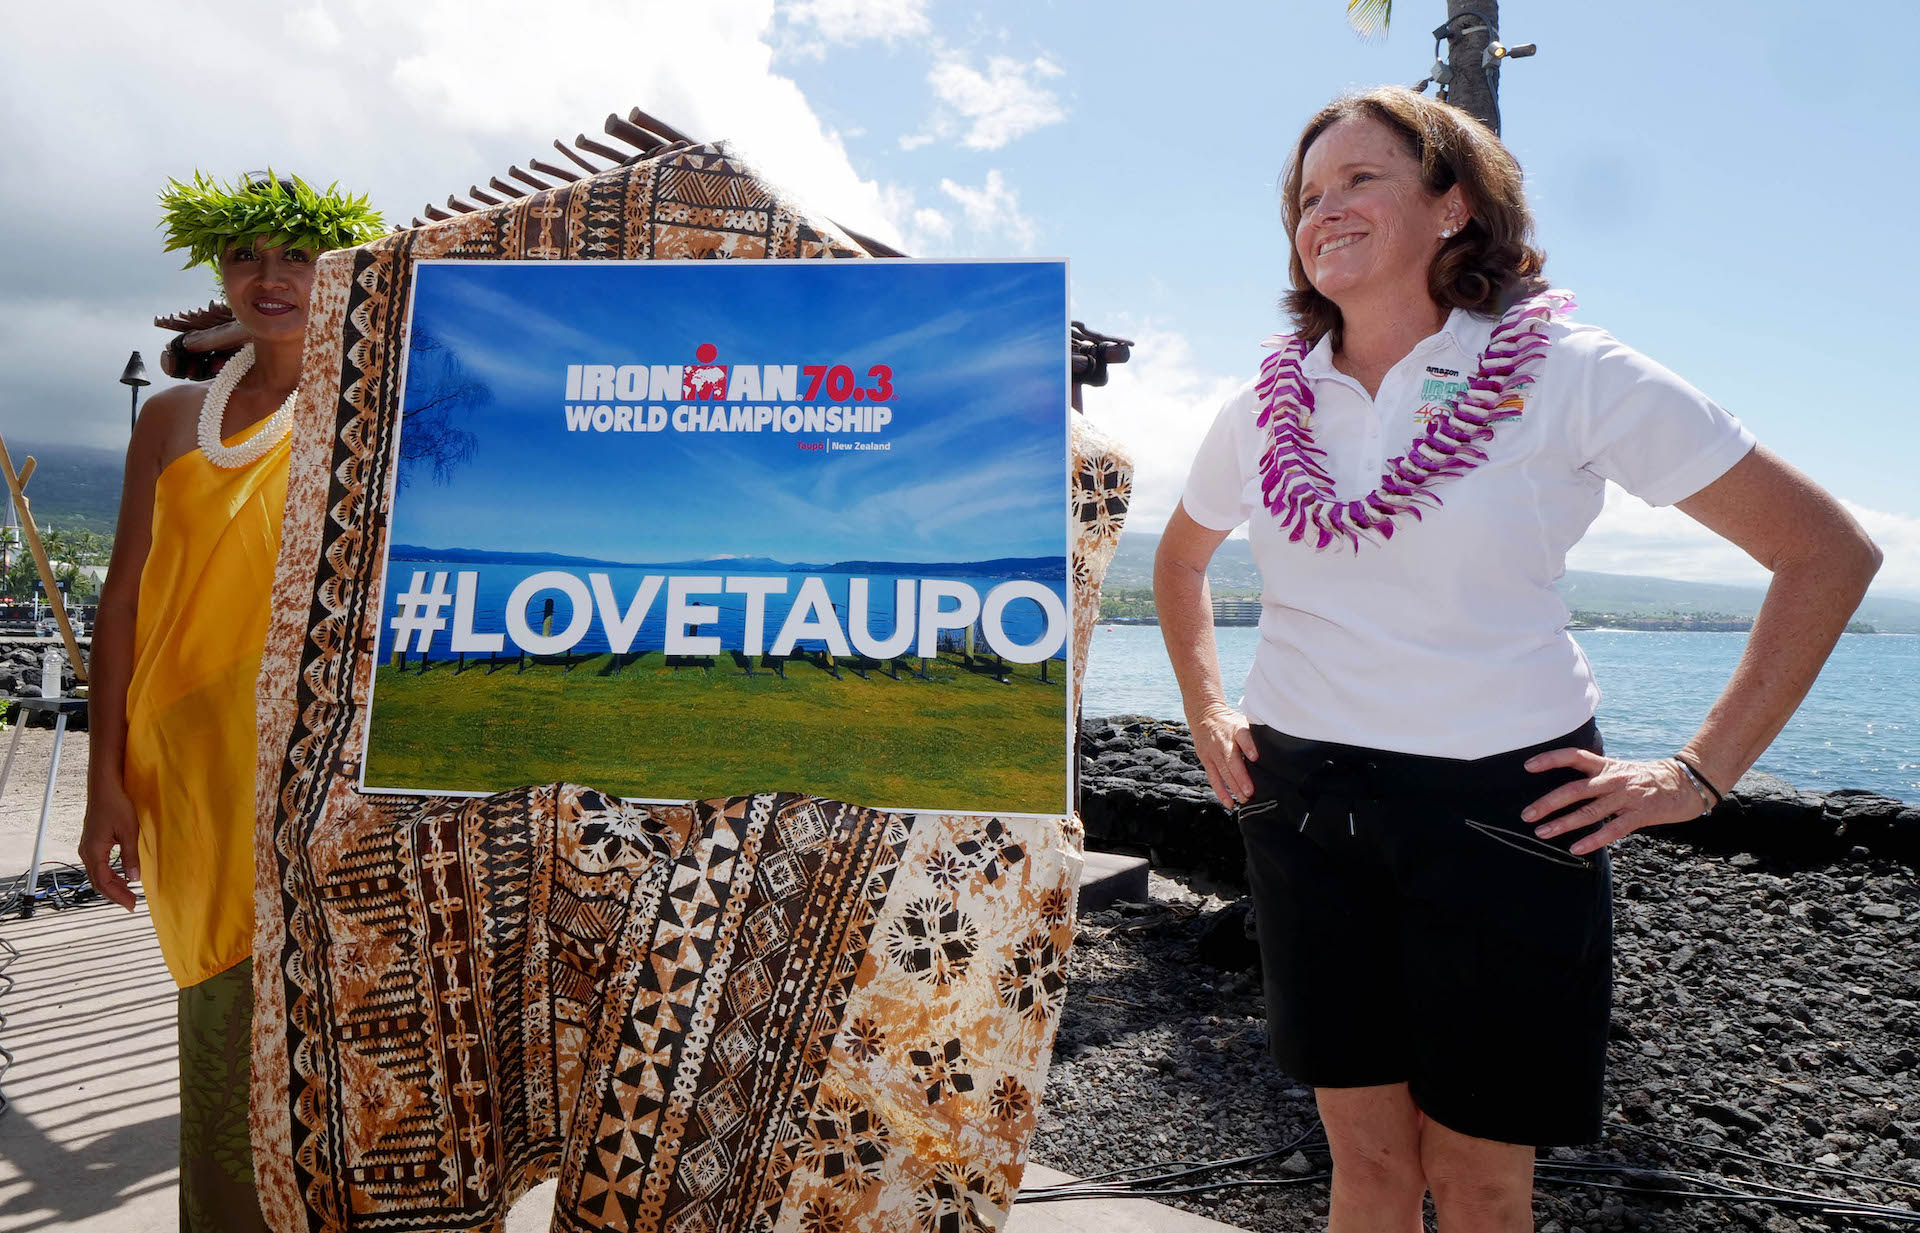 FROM TAUPÕ WITH LOVE: IRONMAN Vice President of World Championship Events, Diana Bertsch shows her delight after the announcement that the 2020 IRONMAN 70.3 World Championship will be held in Taupõ, New Zealand. The 2019 edition of the race will be hosted in Nice, France. (Photo by Donald Miralle/ IRONMAN)